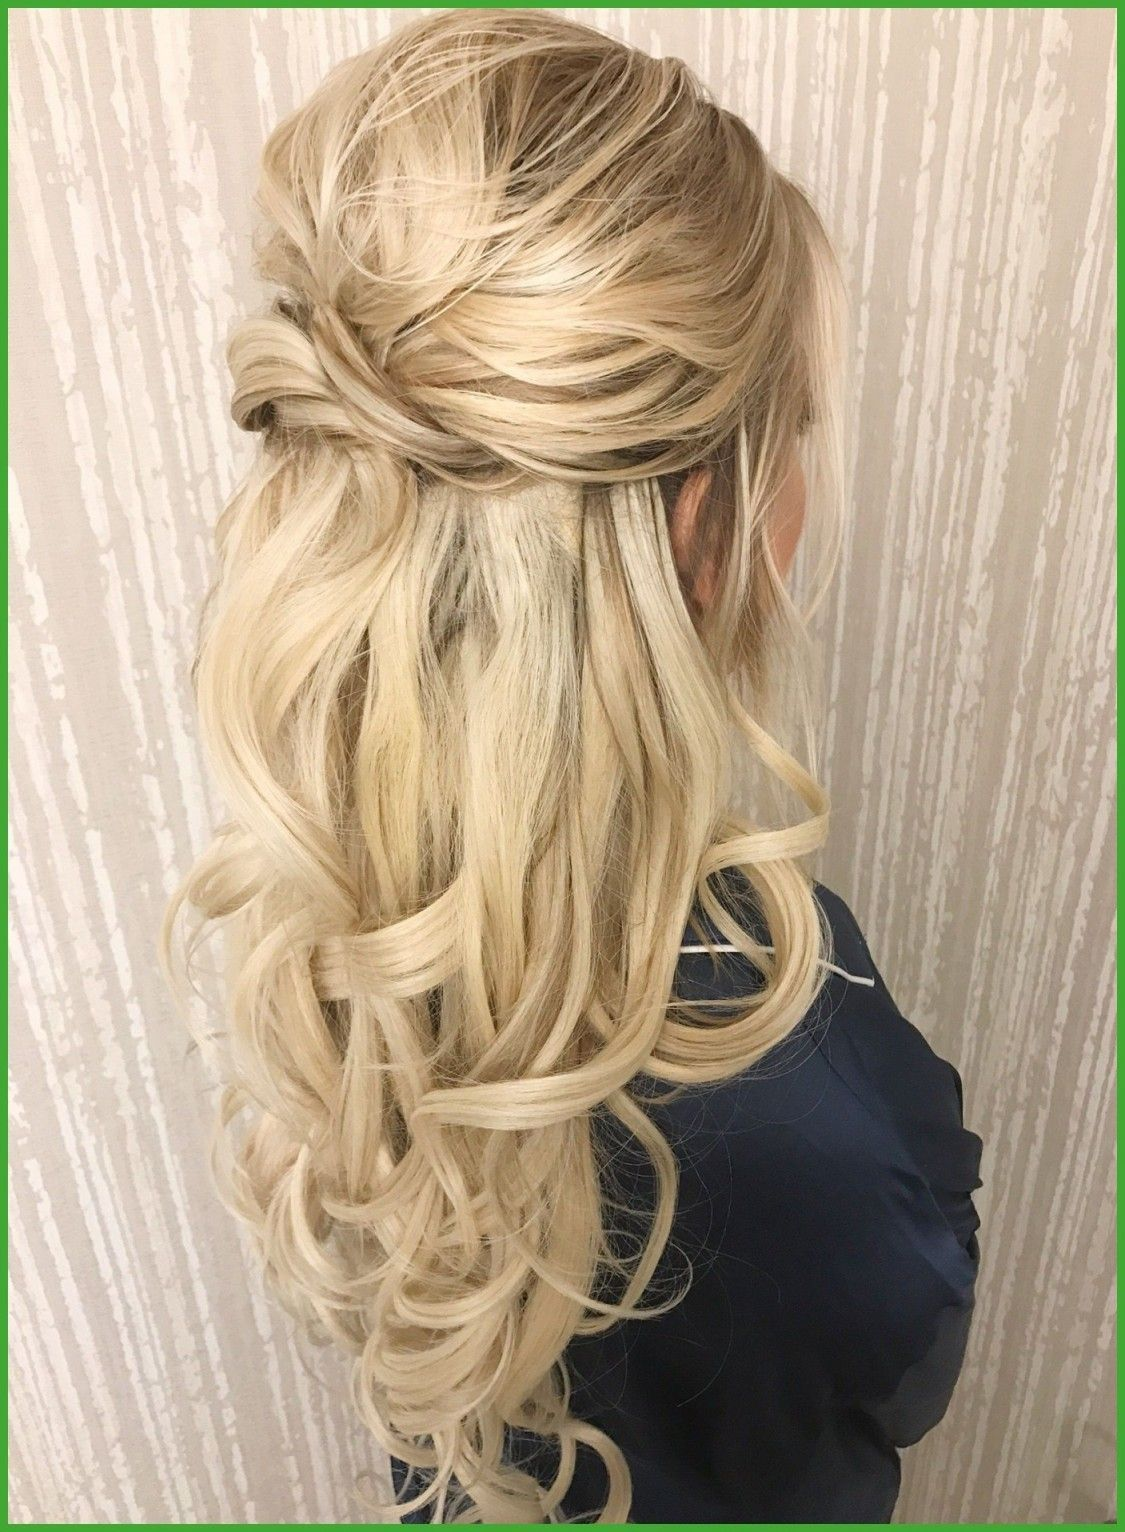 Awesome Frisuren Für Silvester,  #Awesome #bruiloftkapselsbruidsmeisje #Frisuren #für #Silvester